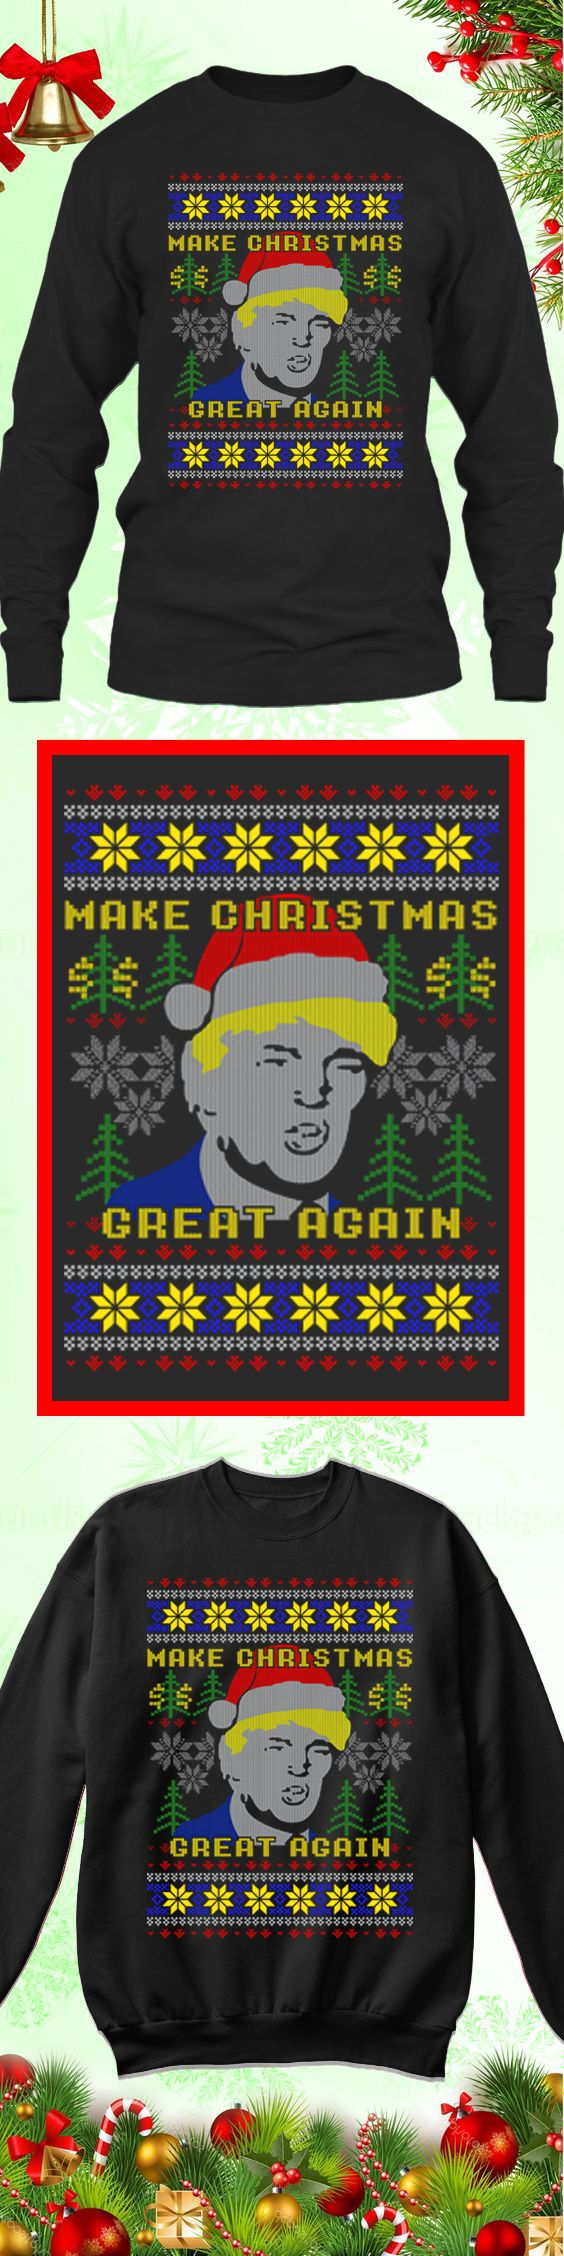 Trump Christmas - Limited edition. Order 2 or more for friends/family & save on shipping! Makes a great gift!